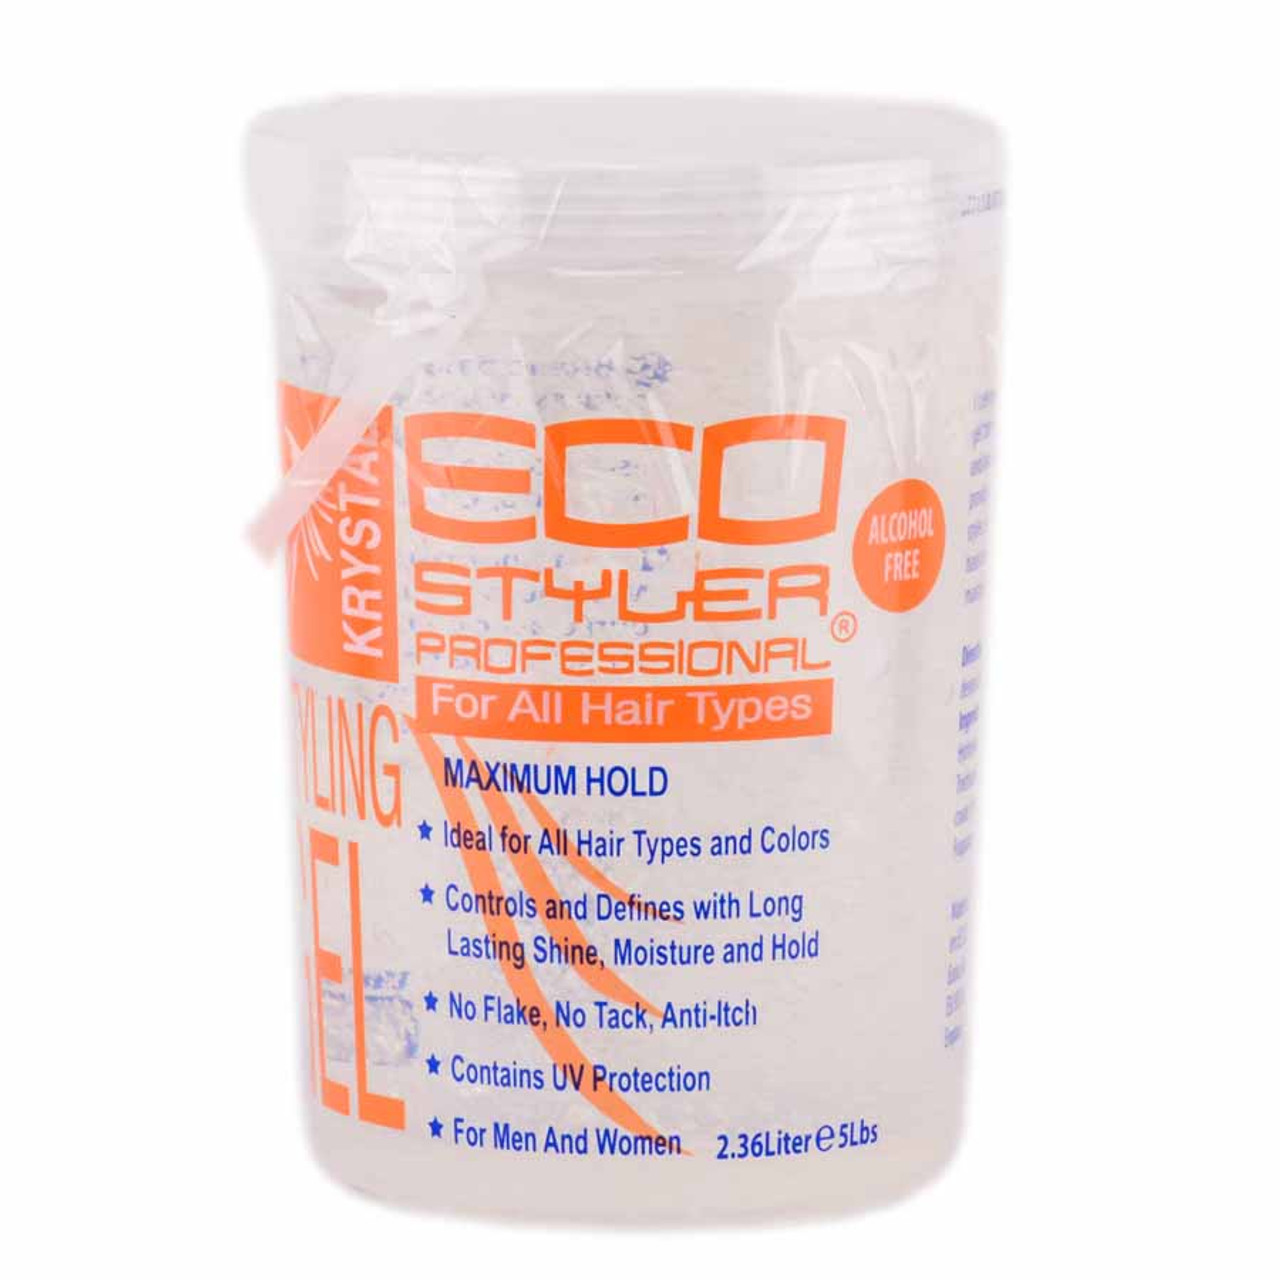 Eco Krystal Styler Professional Styling Gel For All Hair Types